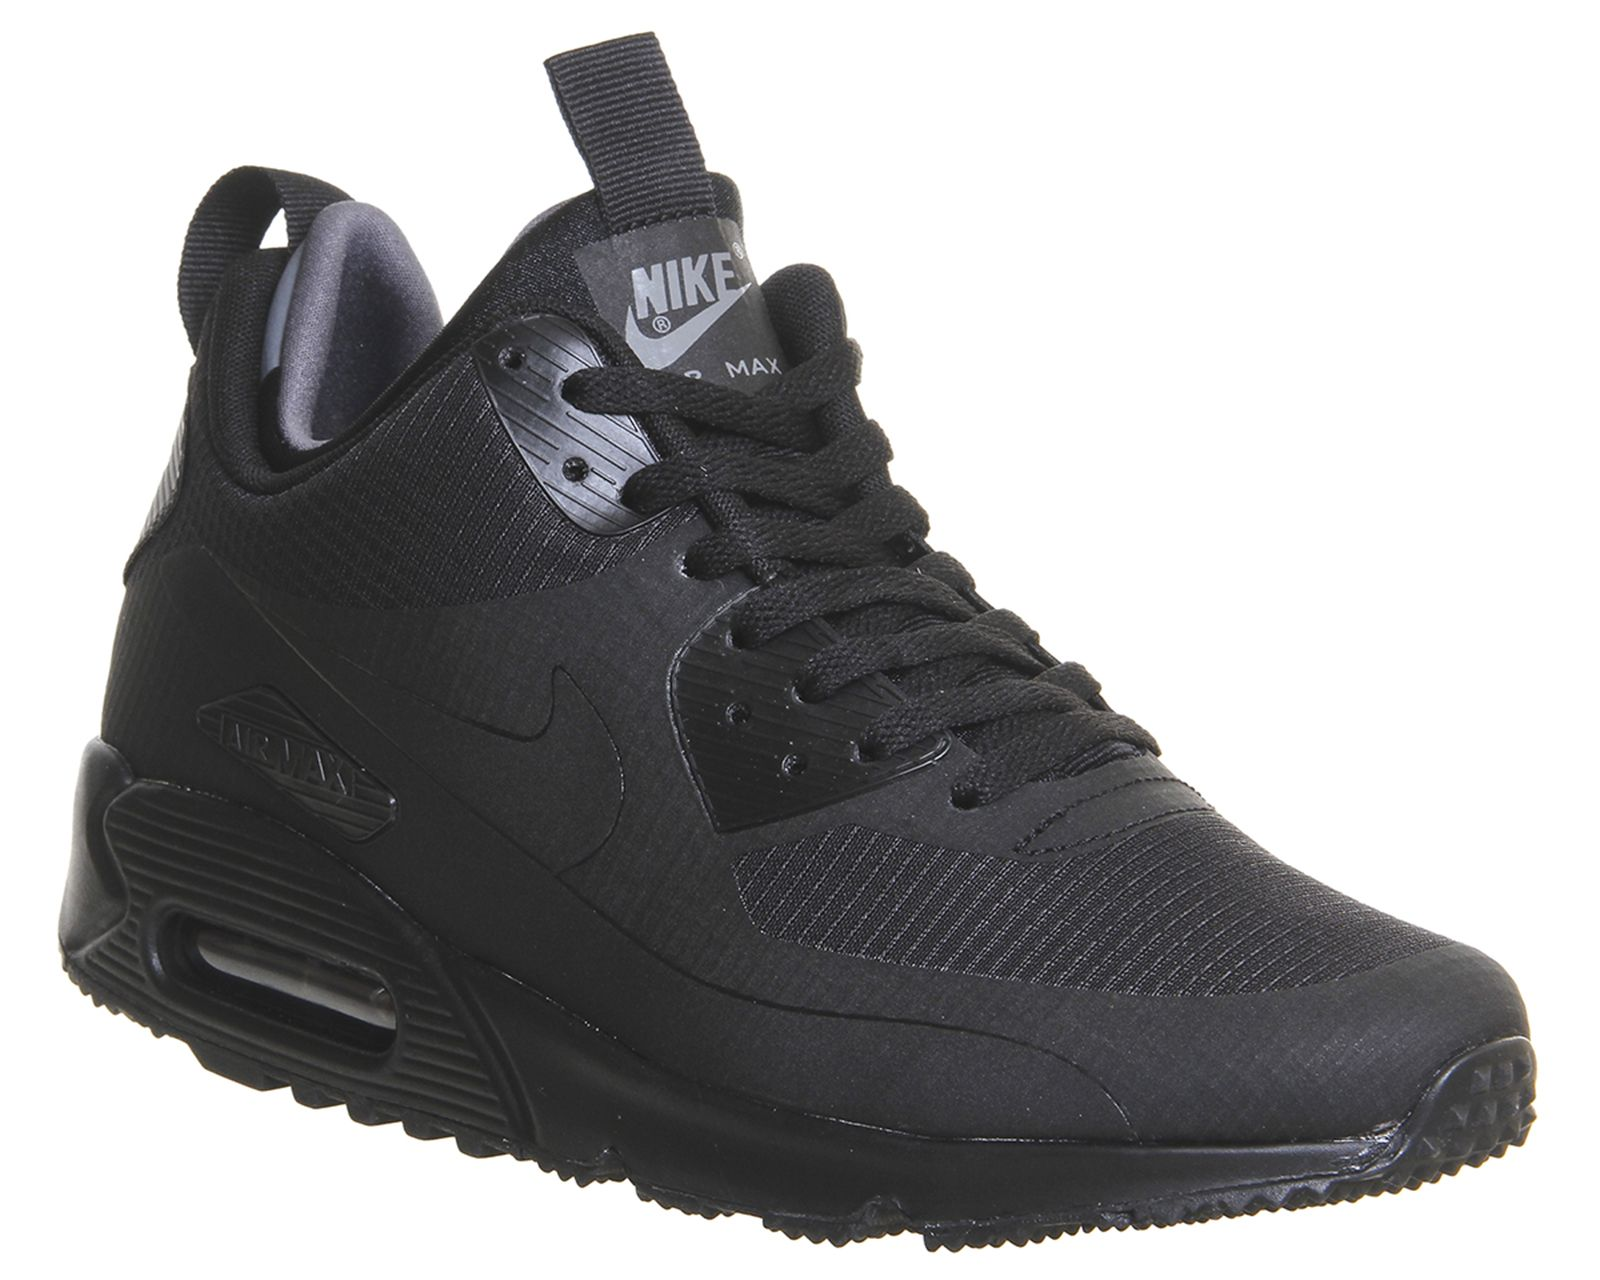 nike air max 90 mid winter boot